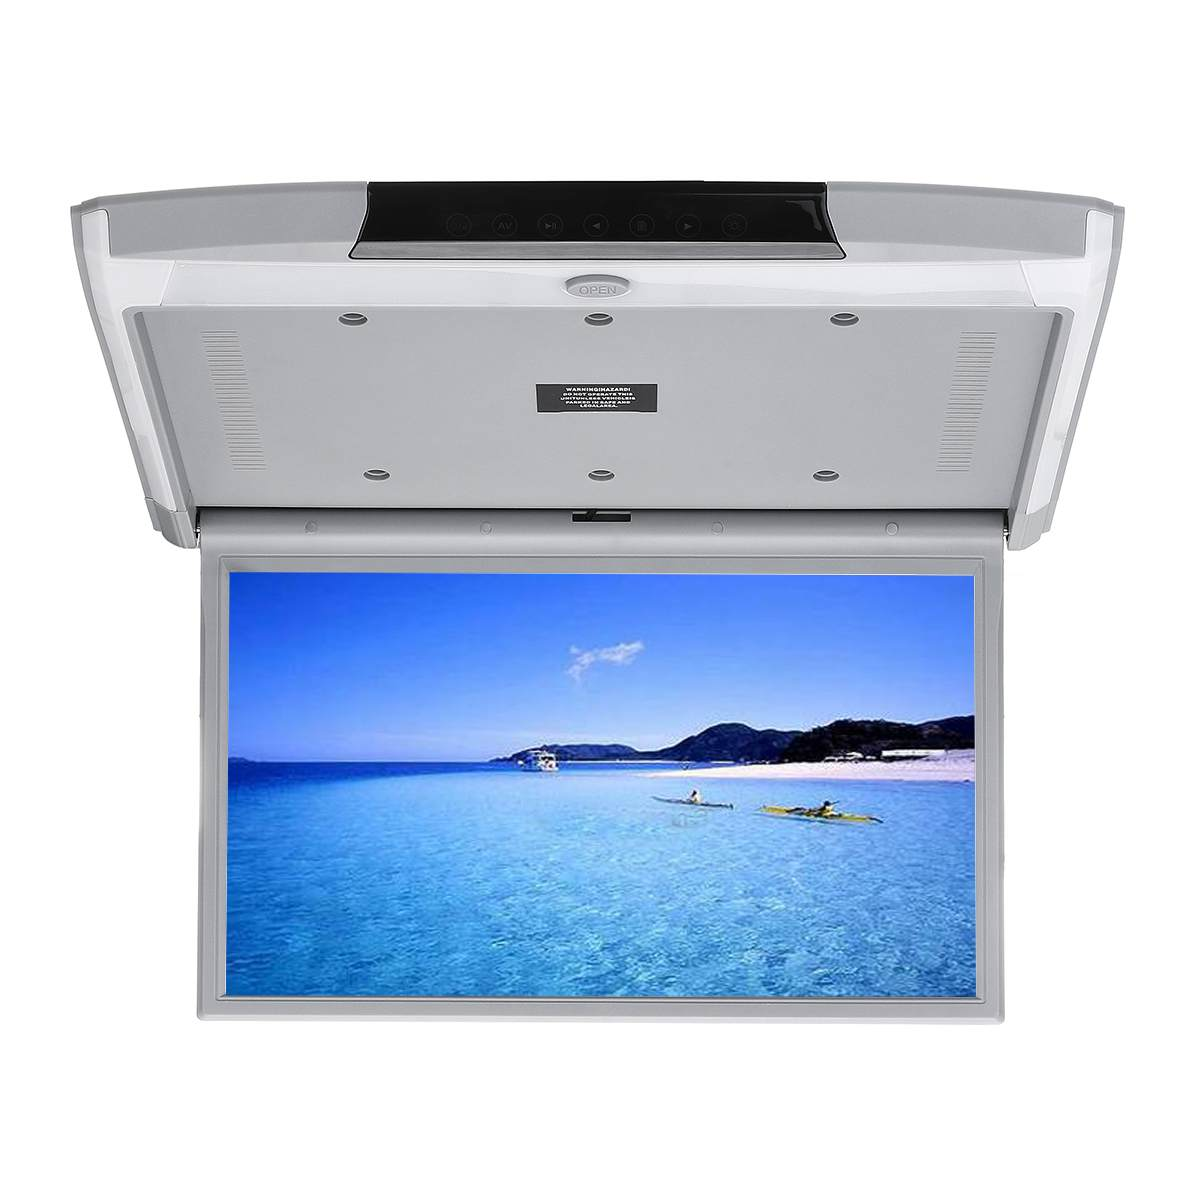 15.6 Inch Car Monitor Ceiling Mount Roof HD Video <font><b>1920x1080</b></font> <font><b>IPS</b></font> Screen <font><b>HDMI</b></font>/USB/SD/FM/Bluetooth/Speaker HD Screen MP5 Player image